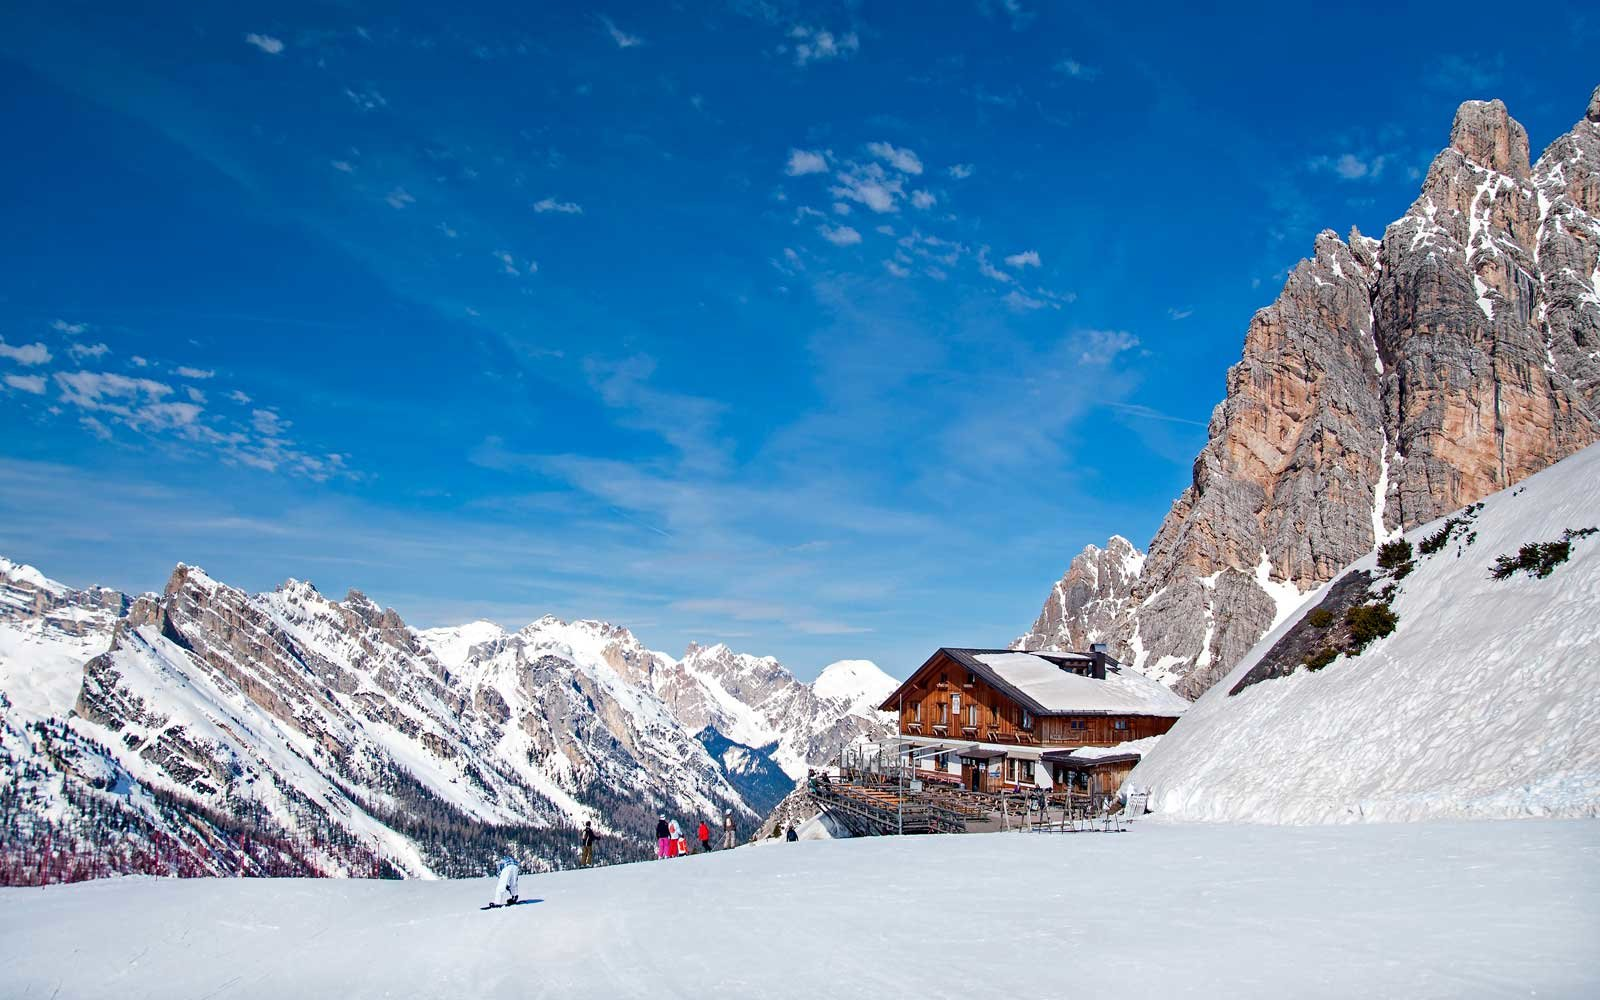 Winter landscape in Dolomites at Cortina D'Ampezzo ski resort, Italy